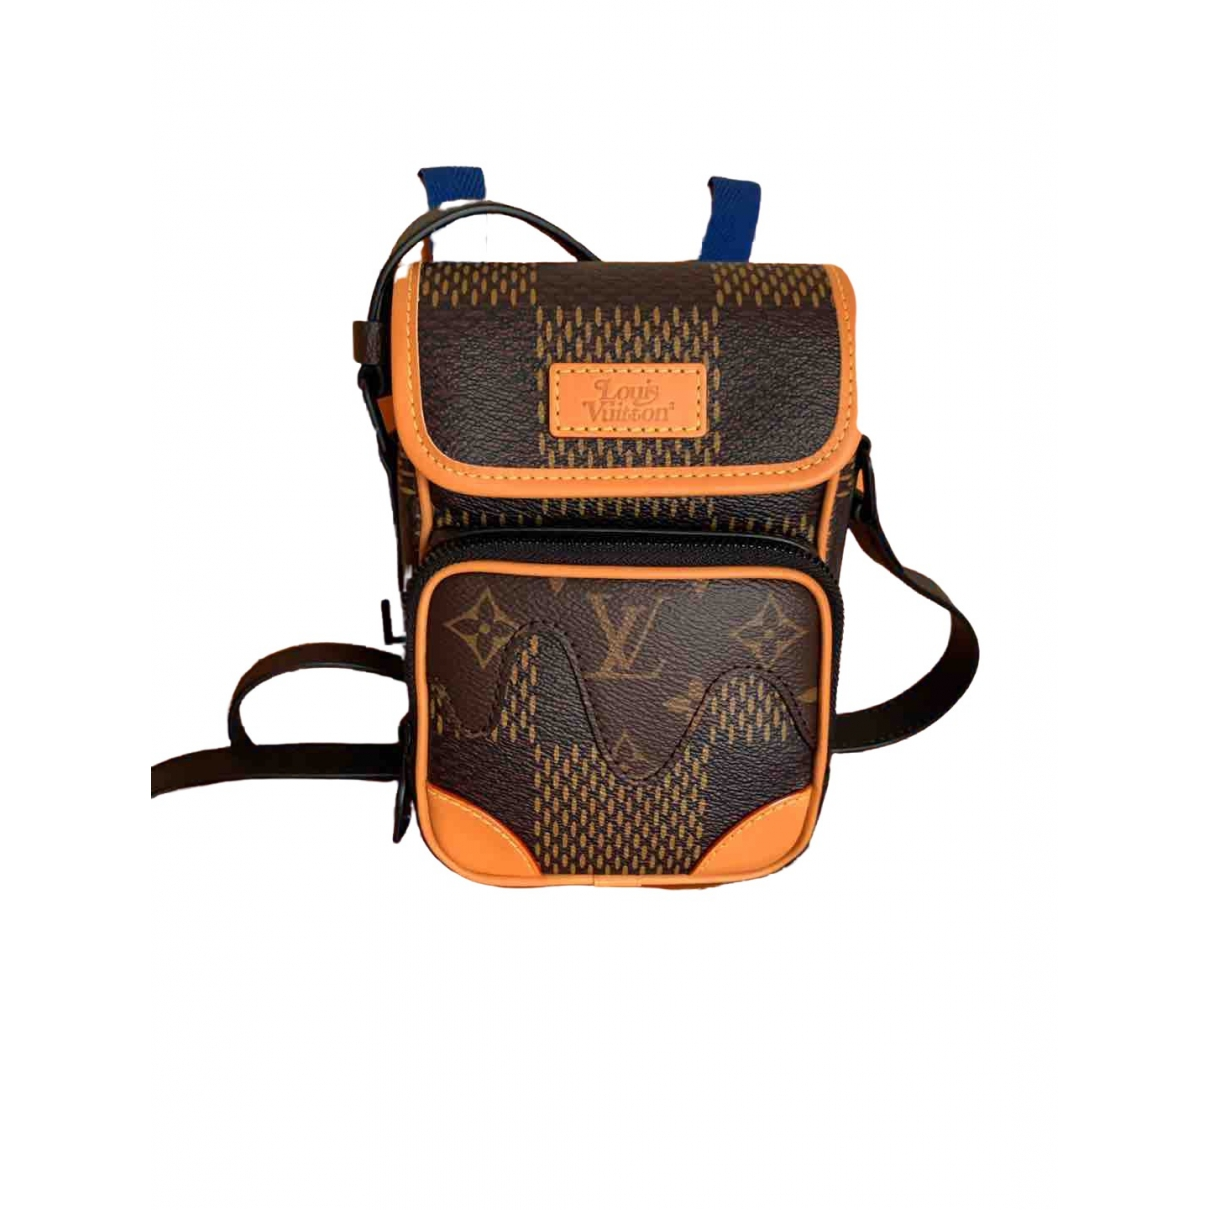 Louis Vuitton X Nigo \N Leather bag for Men \N